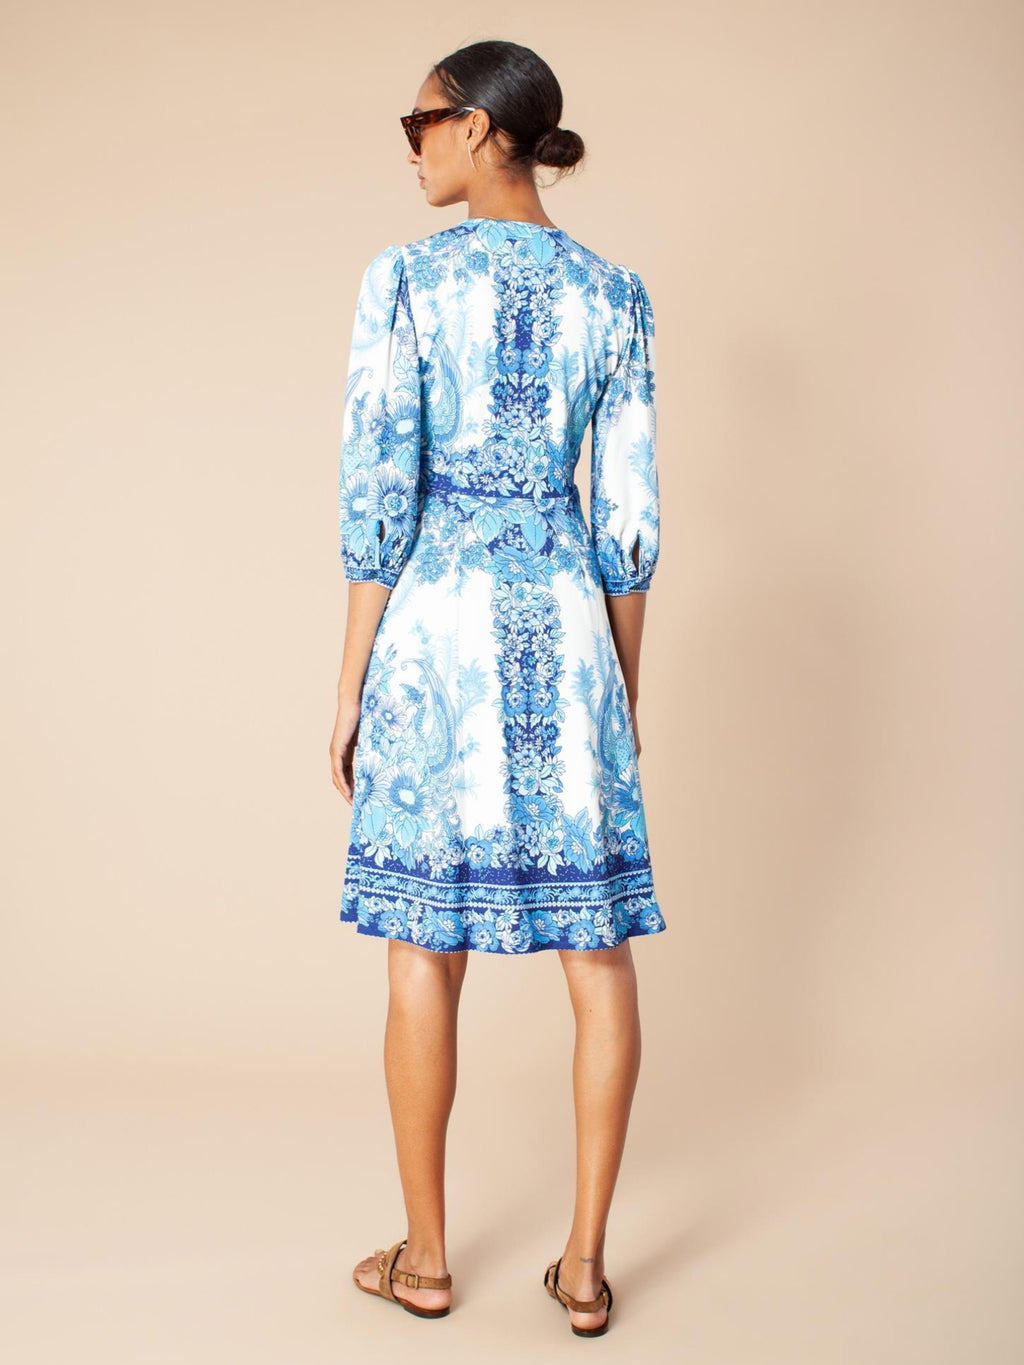 Hale Bob Dress below the knee